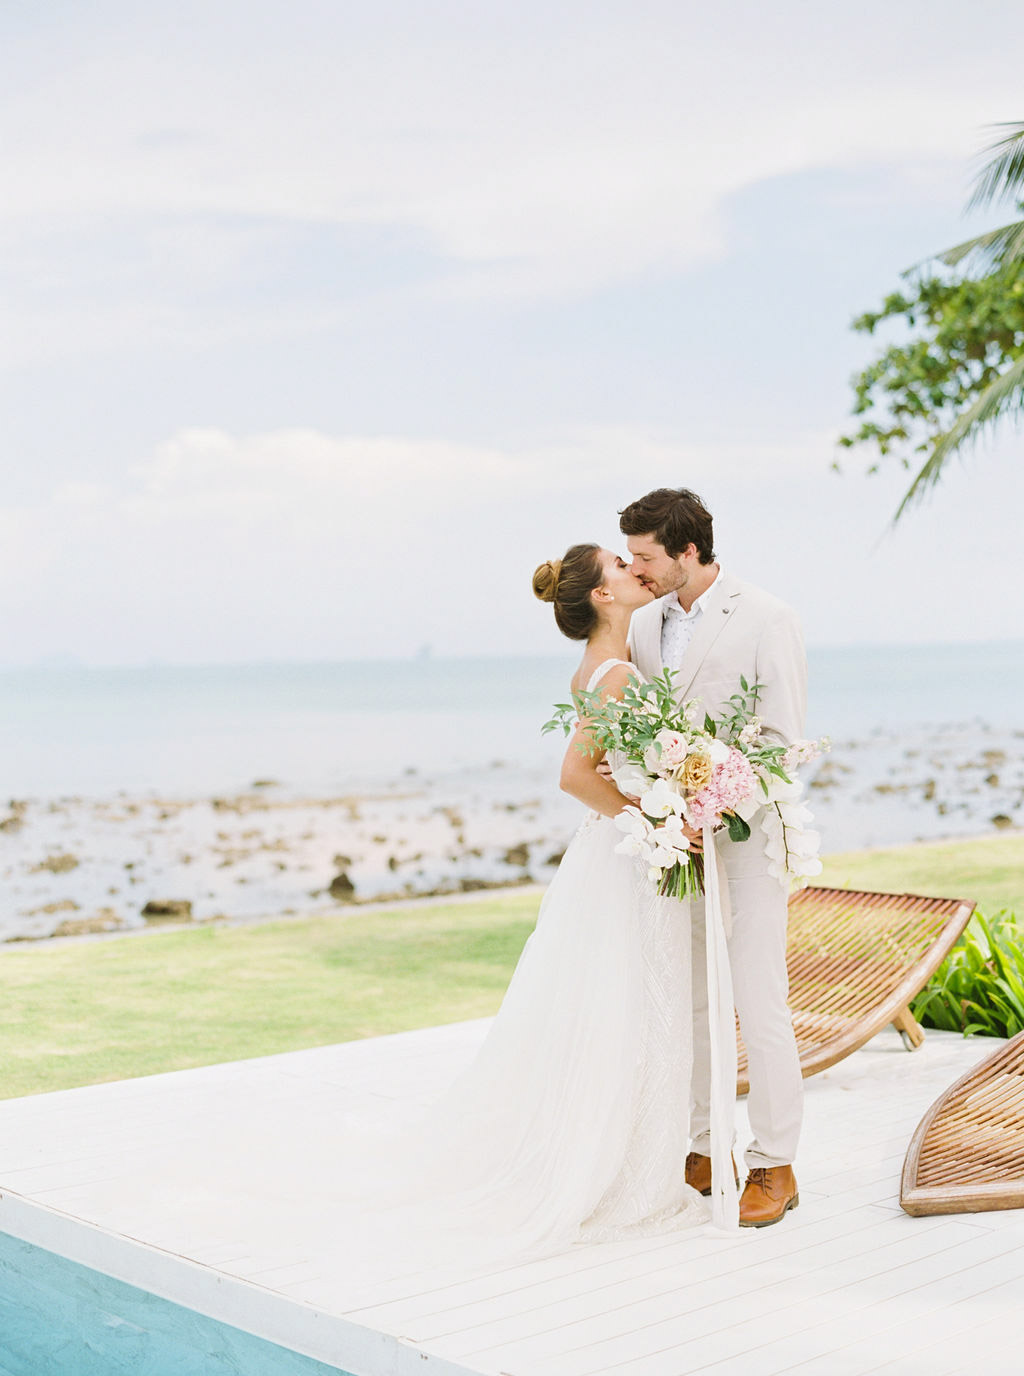 Thailand Wedding Venues Destination Koh Yao Noi By Fine Art Film Wedding Photographer Sheri McMahon-00052.jpg